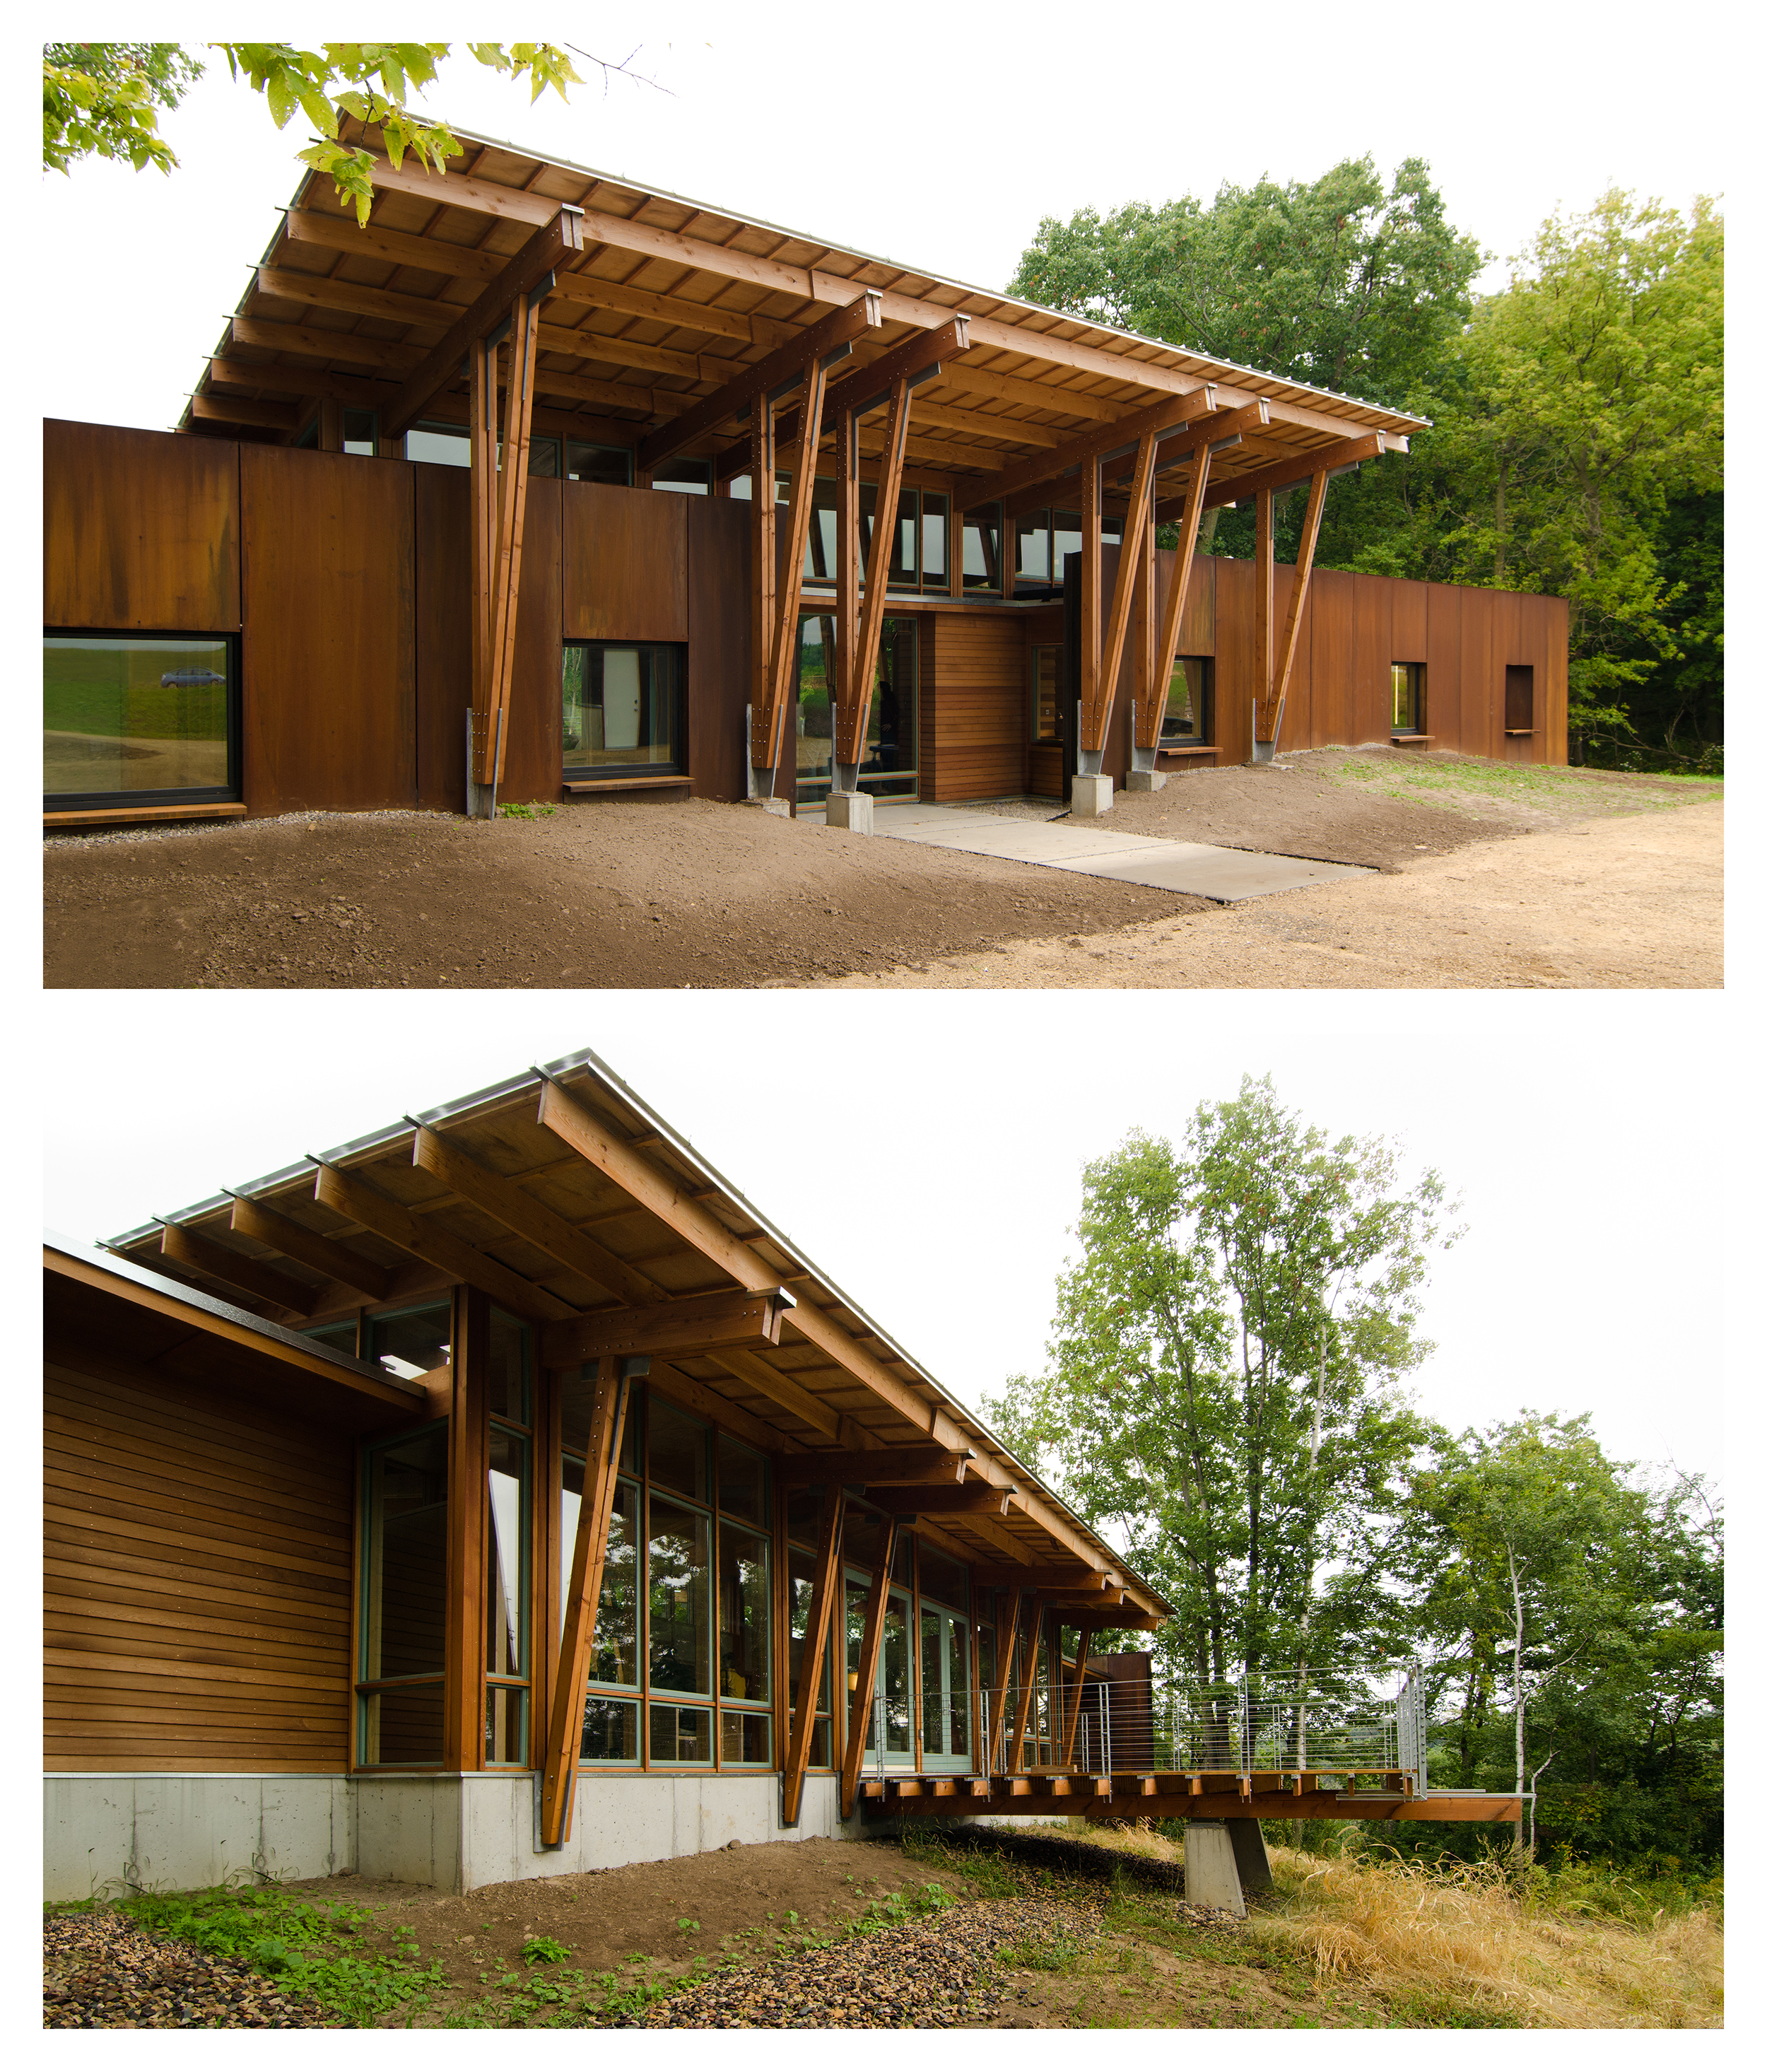 Lake Pepin - Homes by Architects Tour